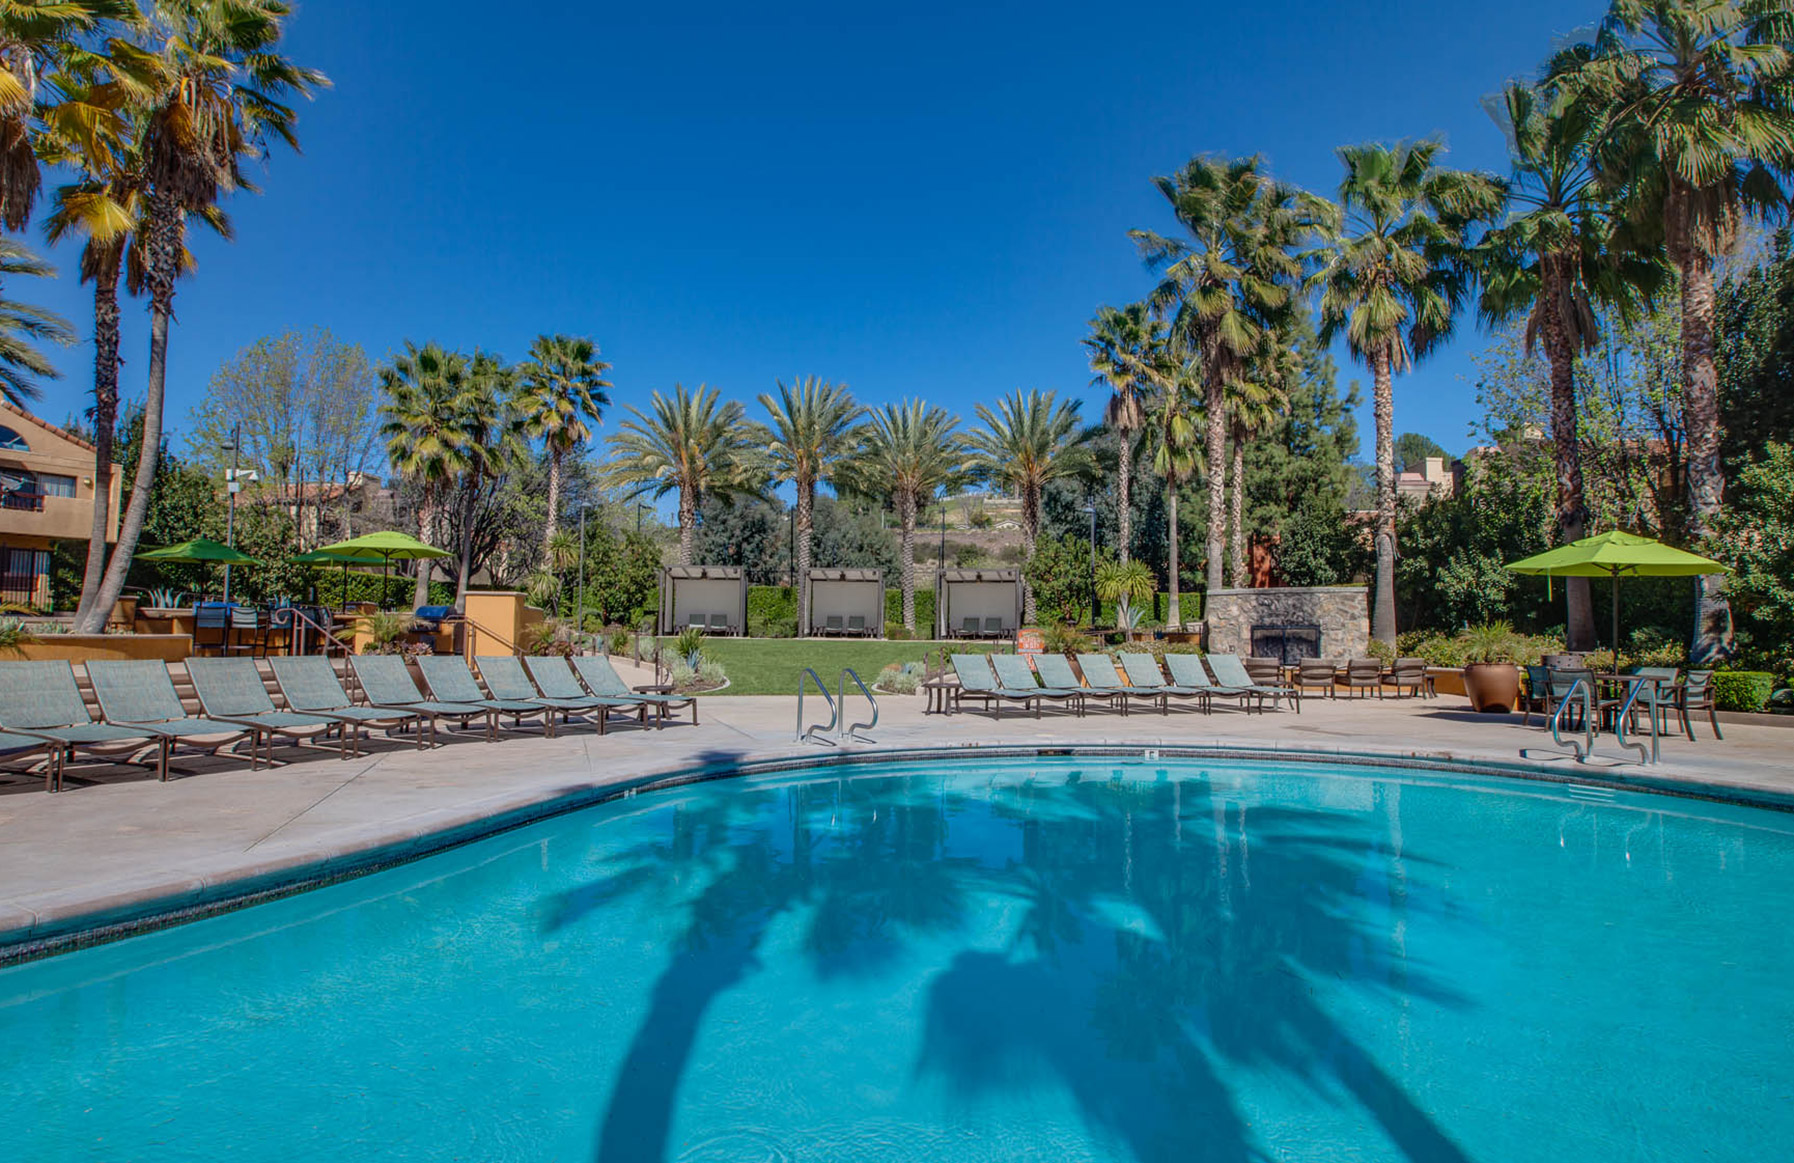 Malibu Canyon Apartments | Calabasas, CA | Community Features